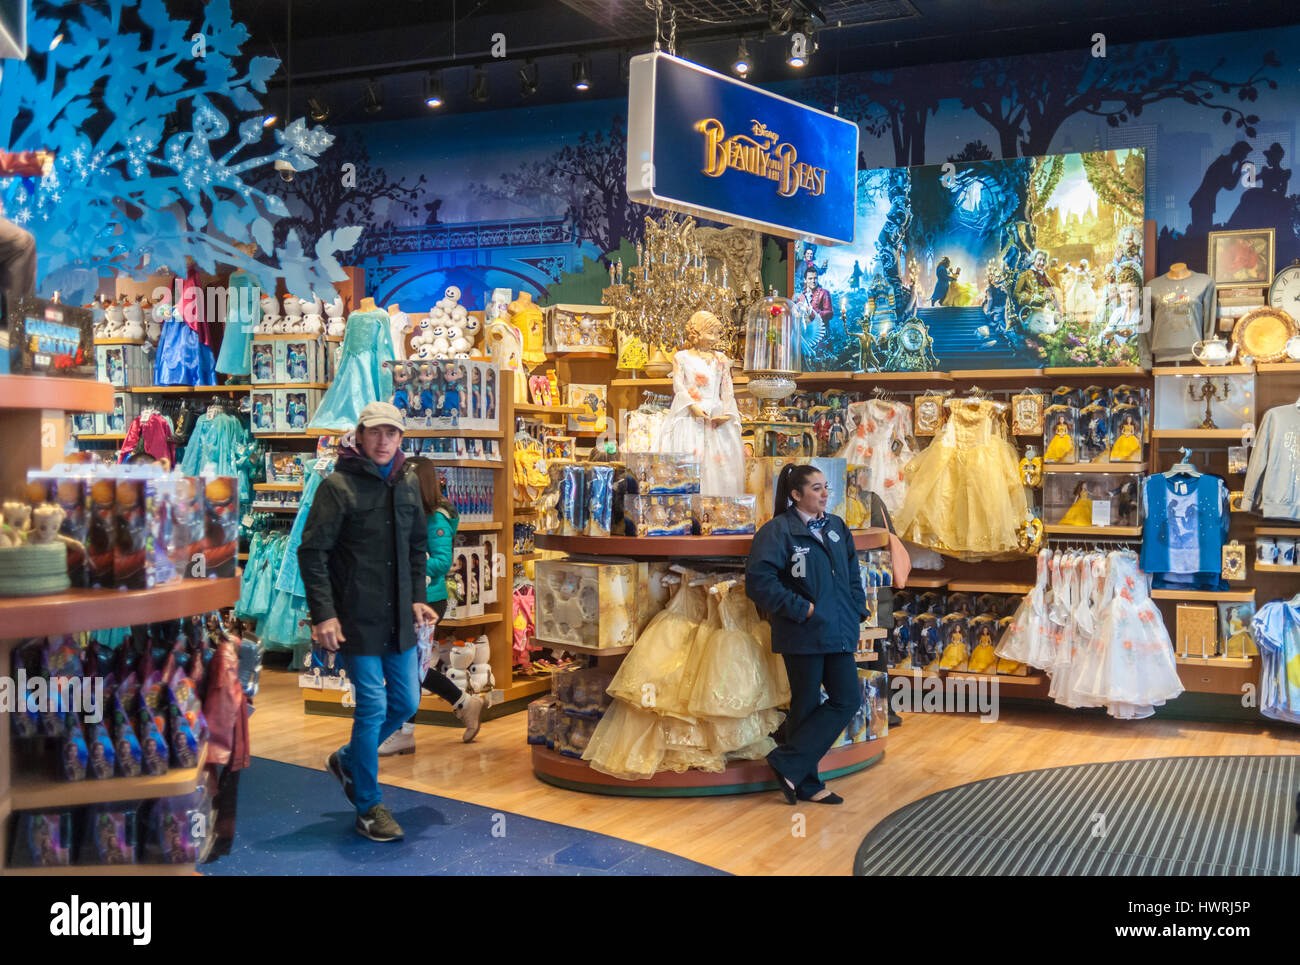 The Disney Store in Times Square in New York promotes ...